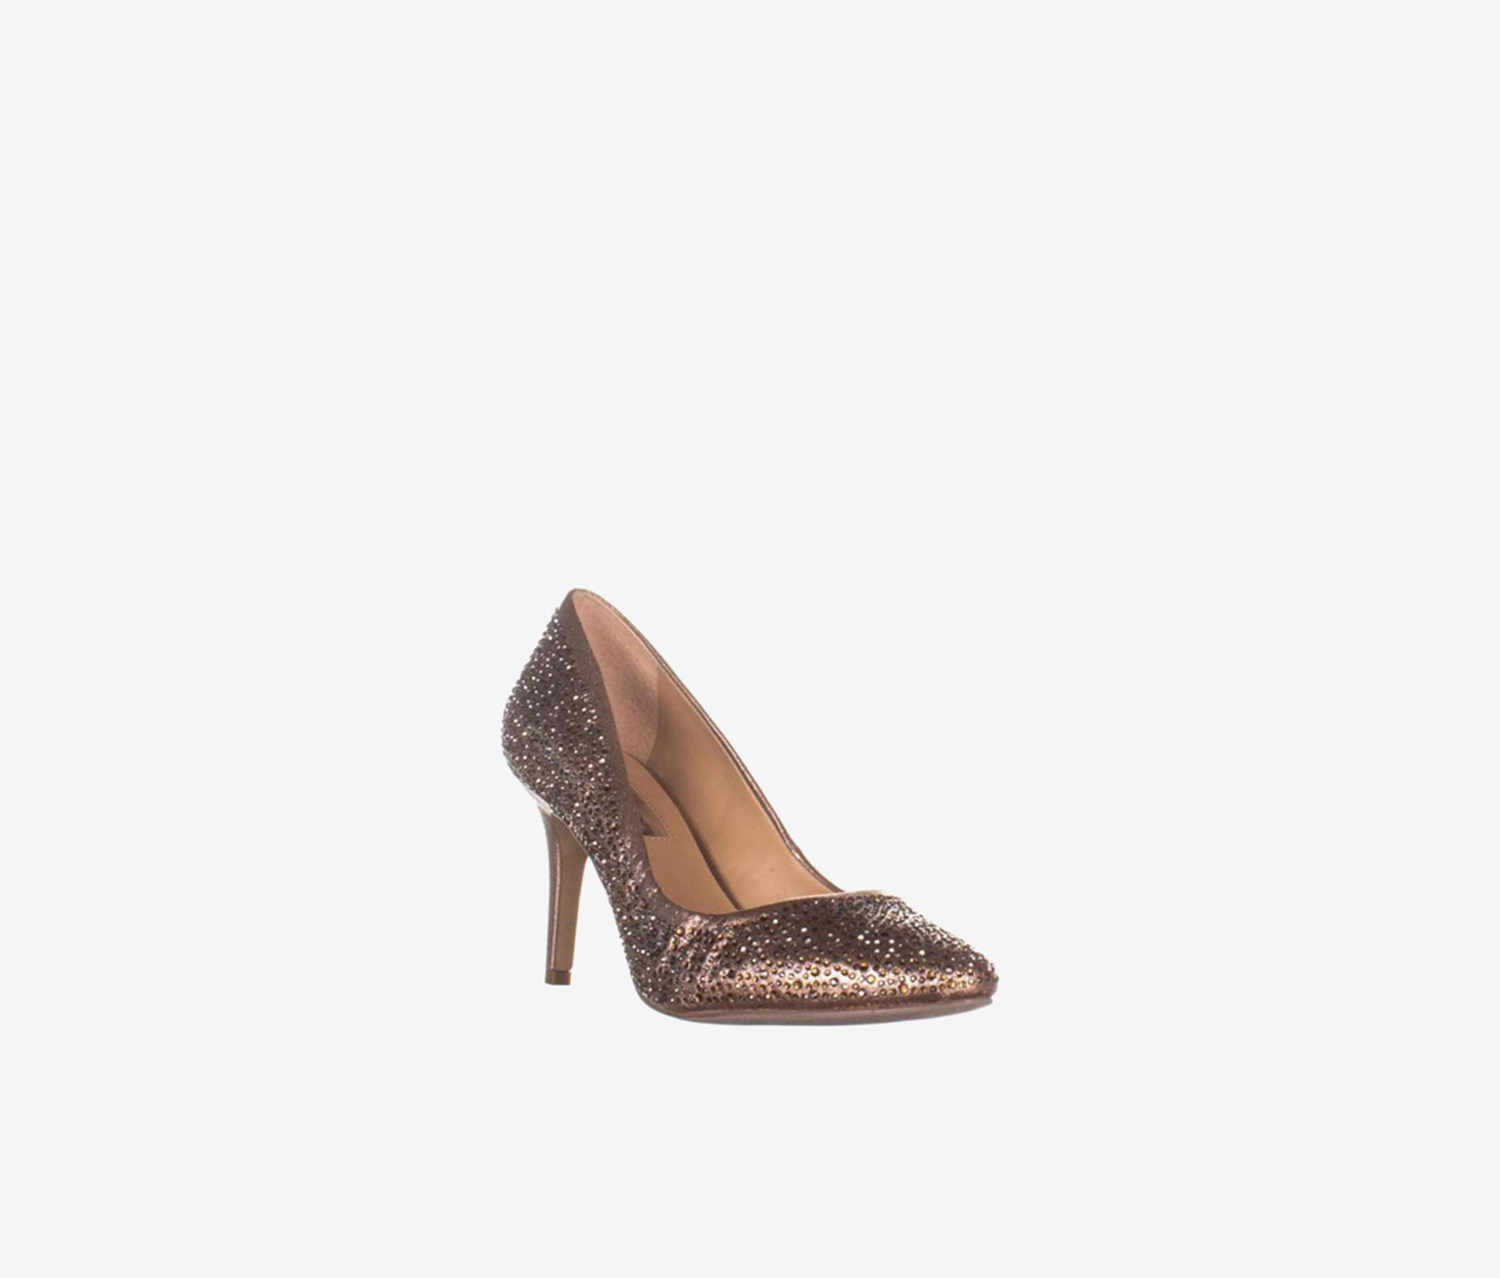 Zitah Pointed Toe Rhinestone Evening Pumps, Soft Bronze